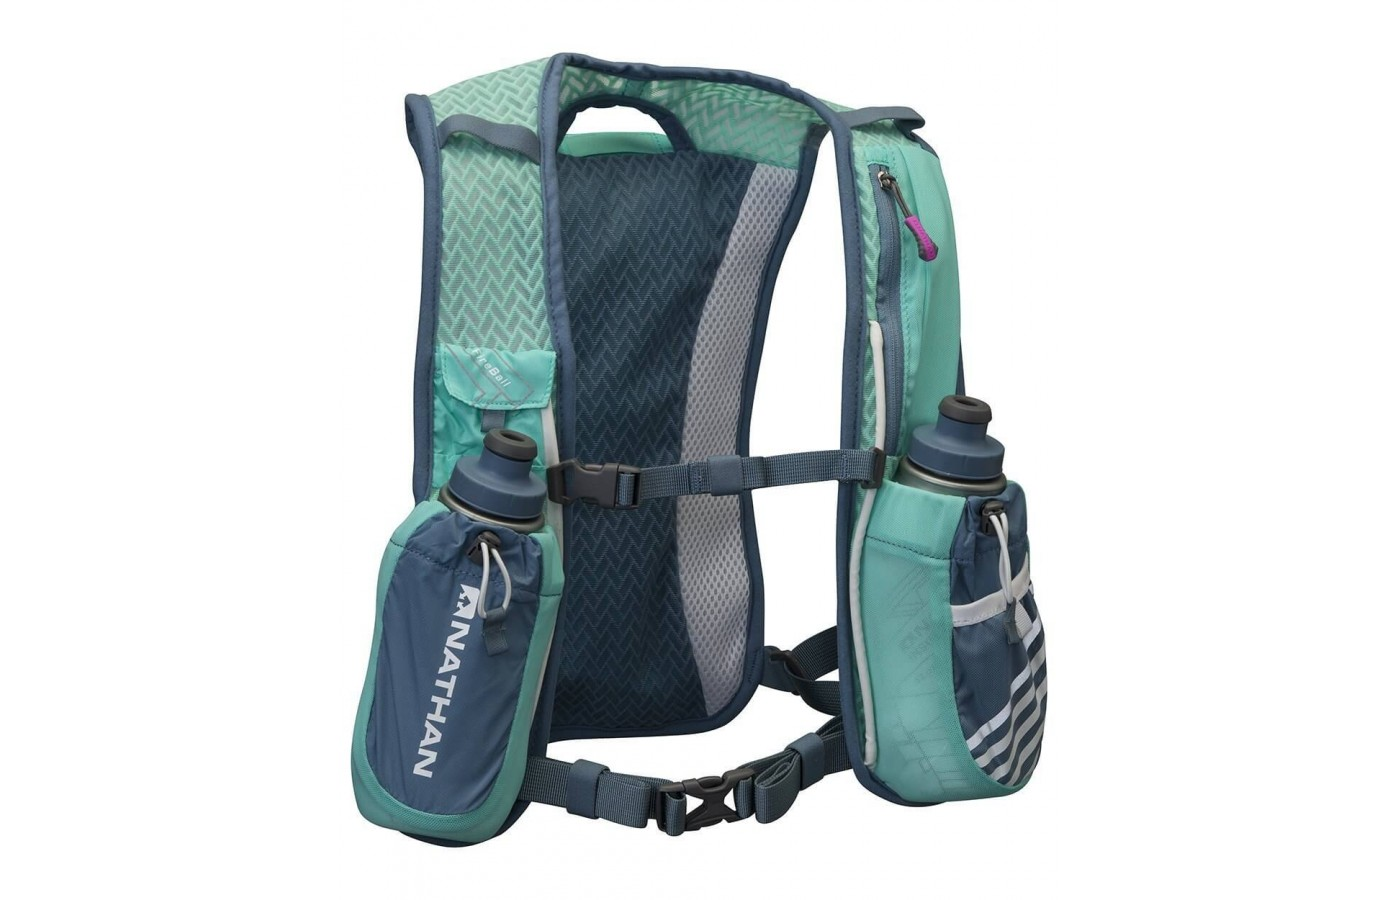 The Nathan Fireball has two pouches on its shoulder straps for storing water flasks.